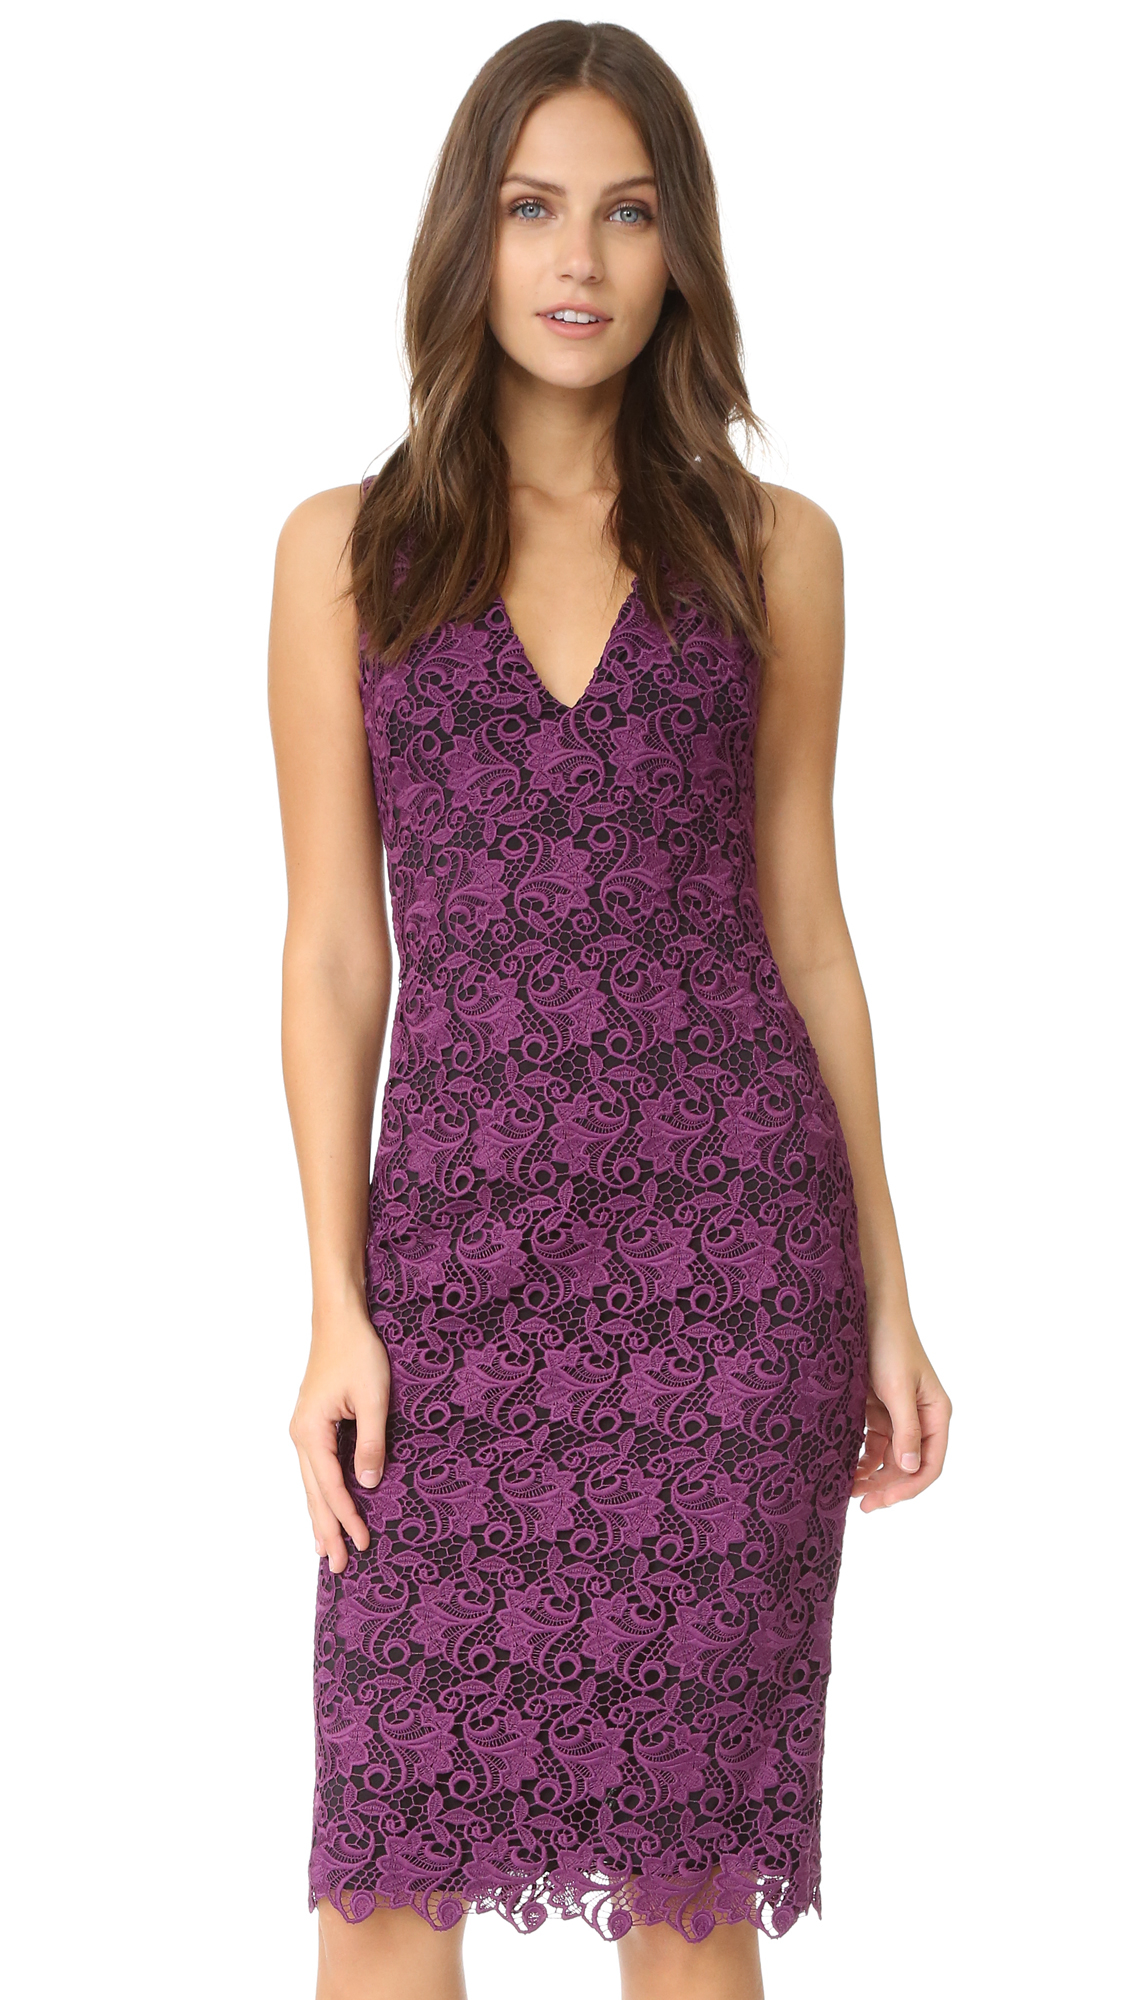 Lyst - Alice + Olivia Preslee Fitted Lace Midi Dress in Black